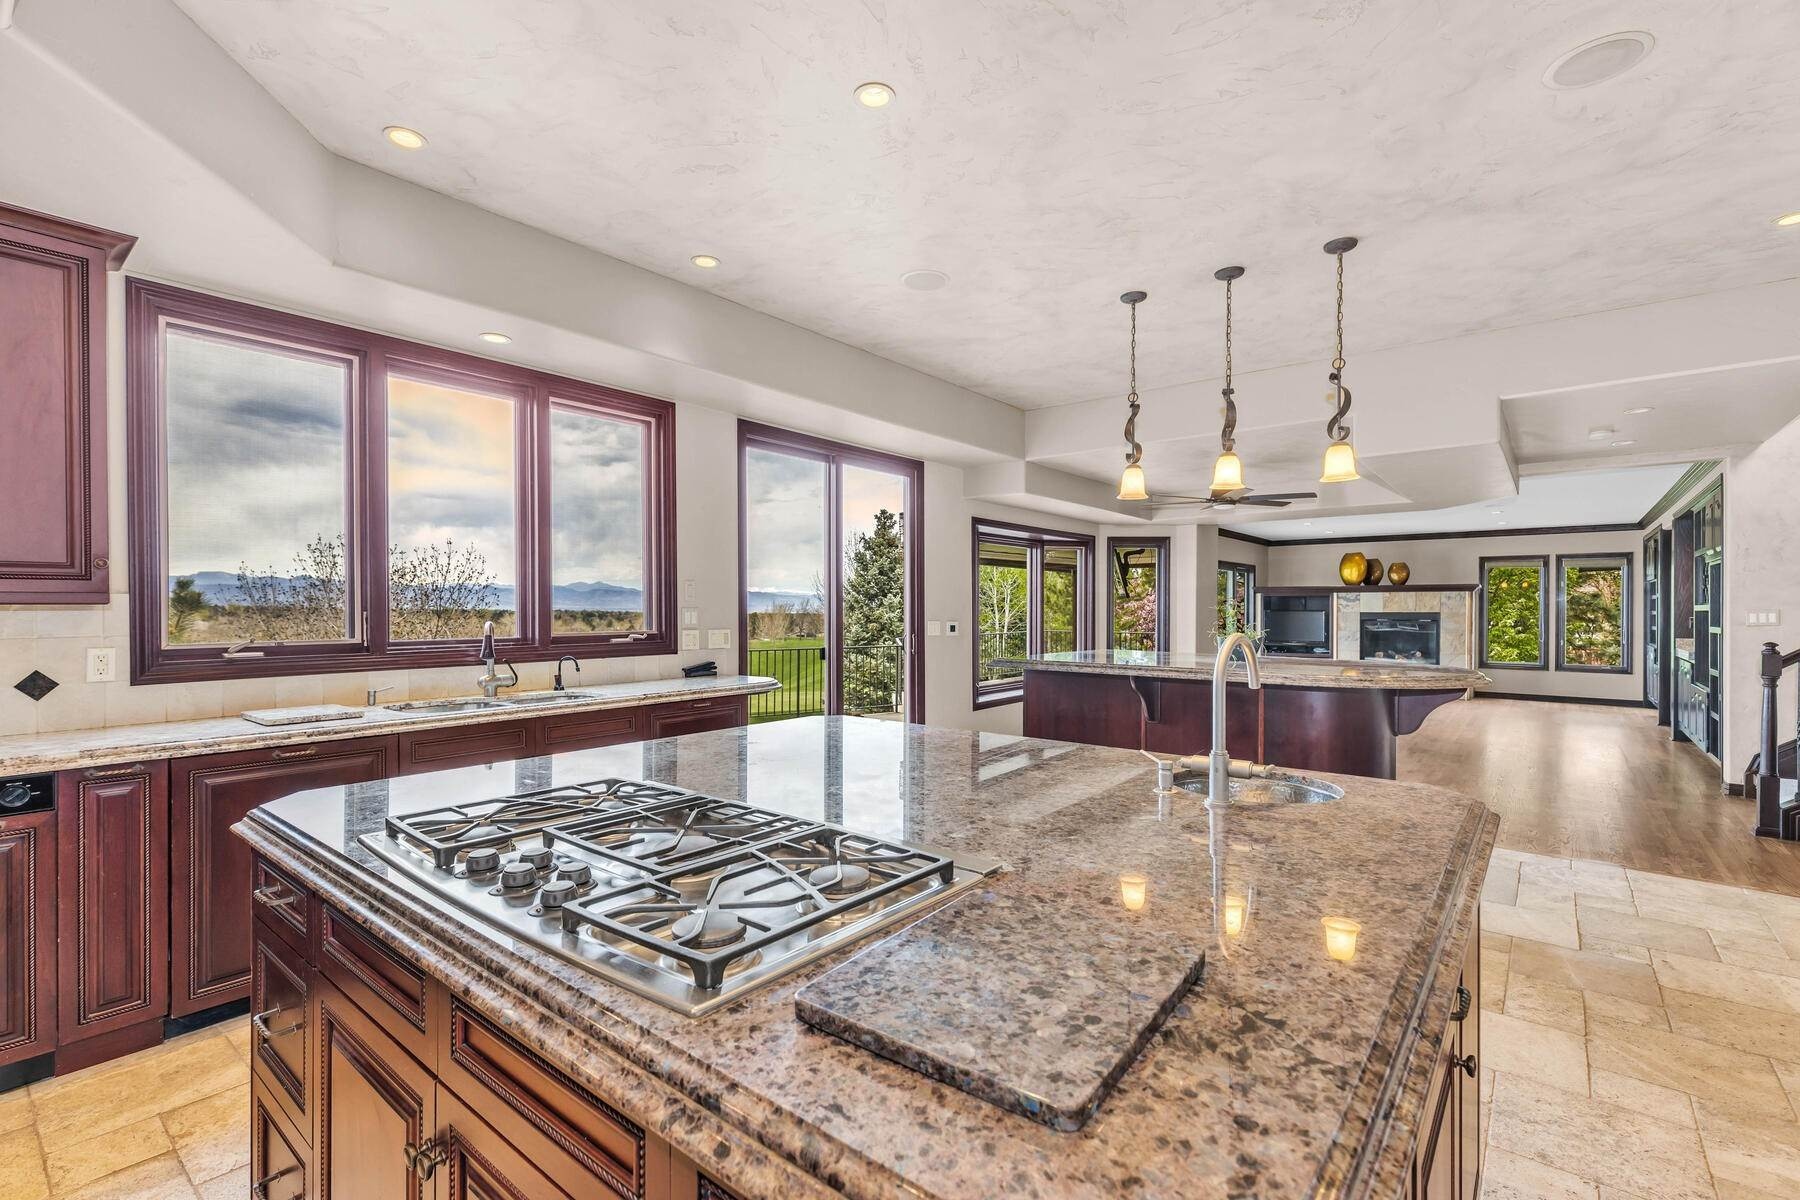 Single Family Homes for Active at Impressive Heritage Greens Estate with Golf Course & Mountain Views! 7921 S Eudora Circle Centennial, Colorado 80122 United States